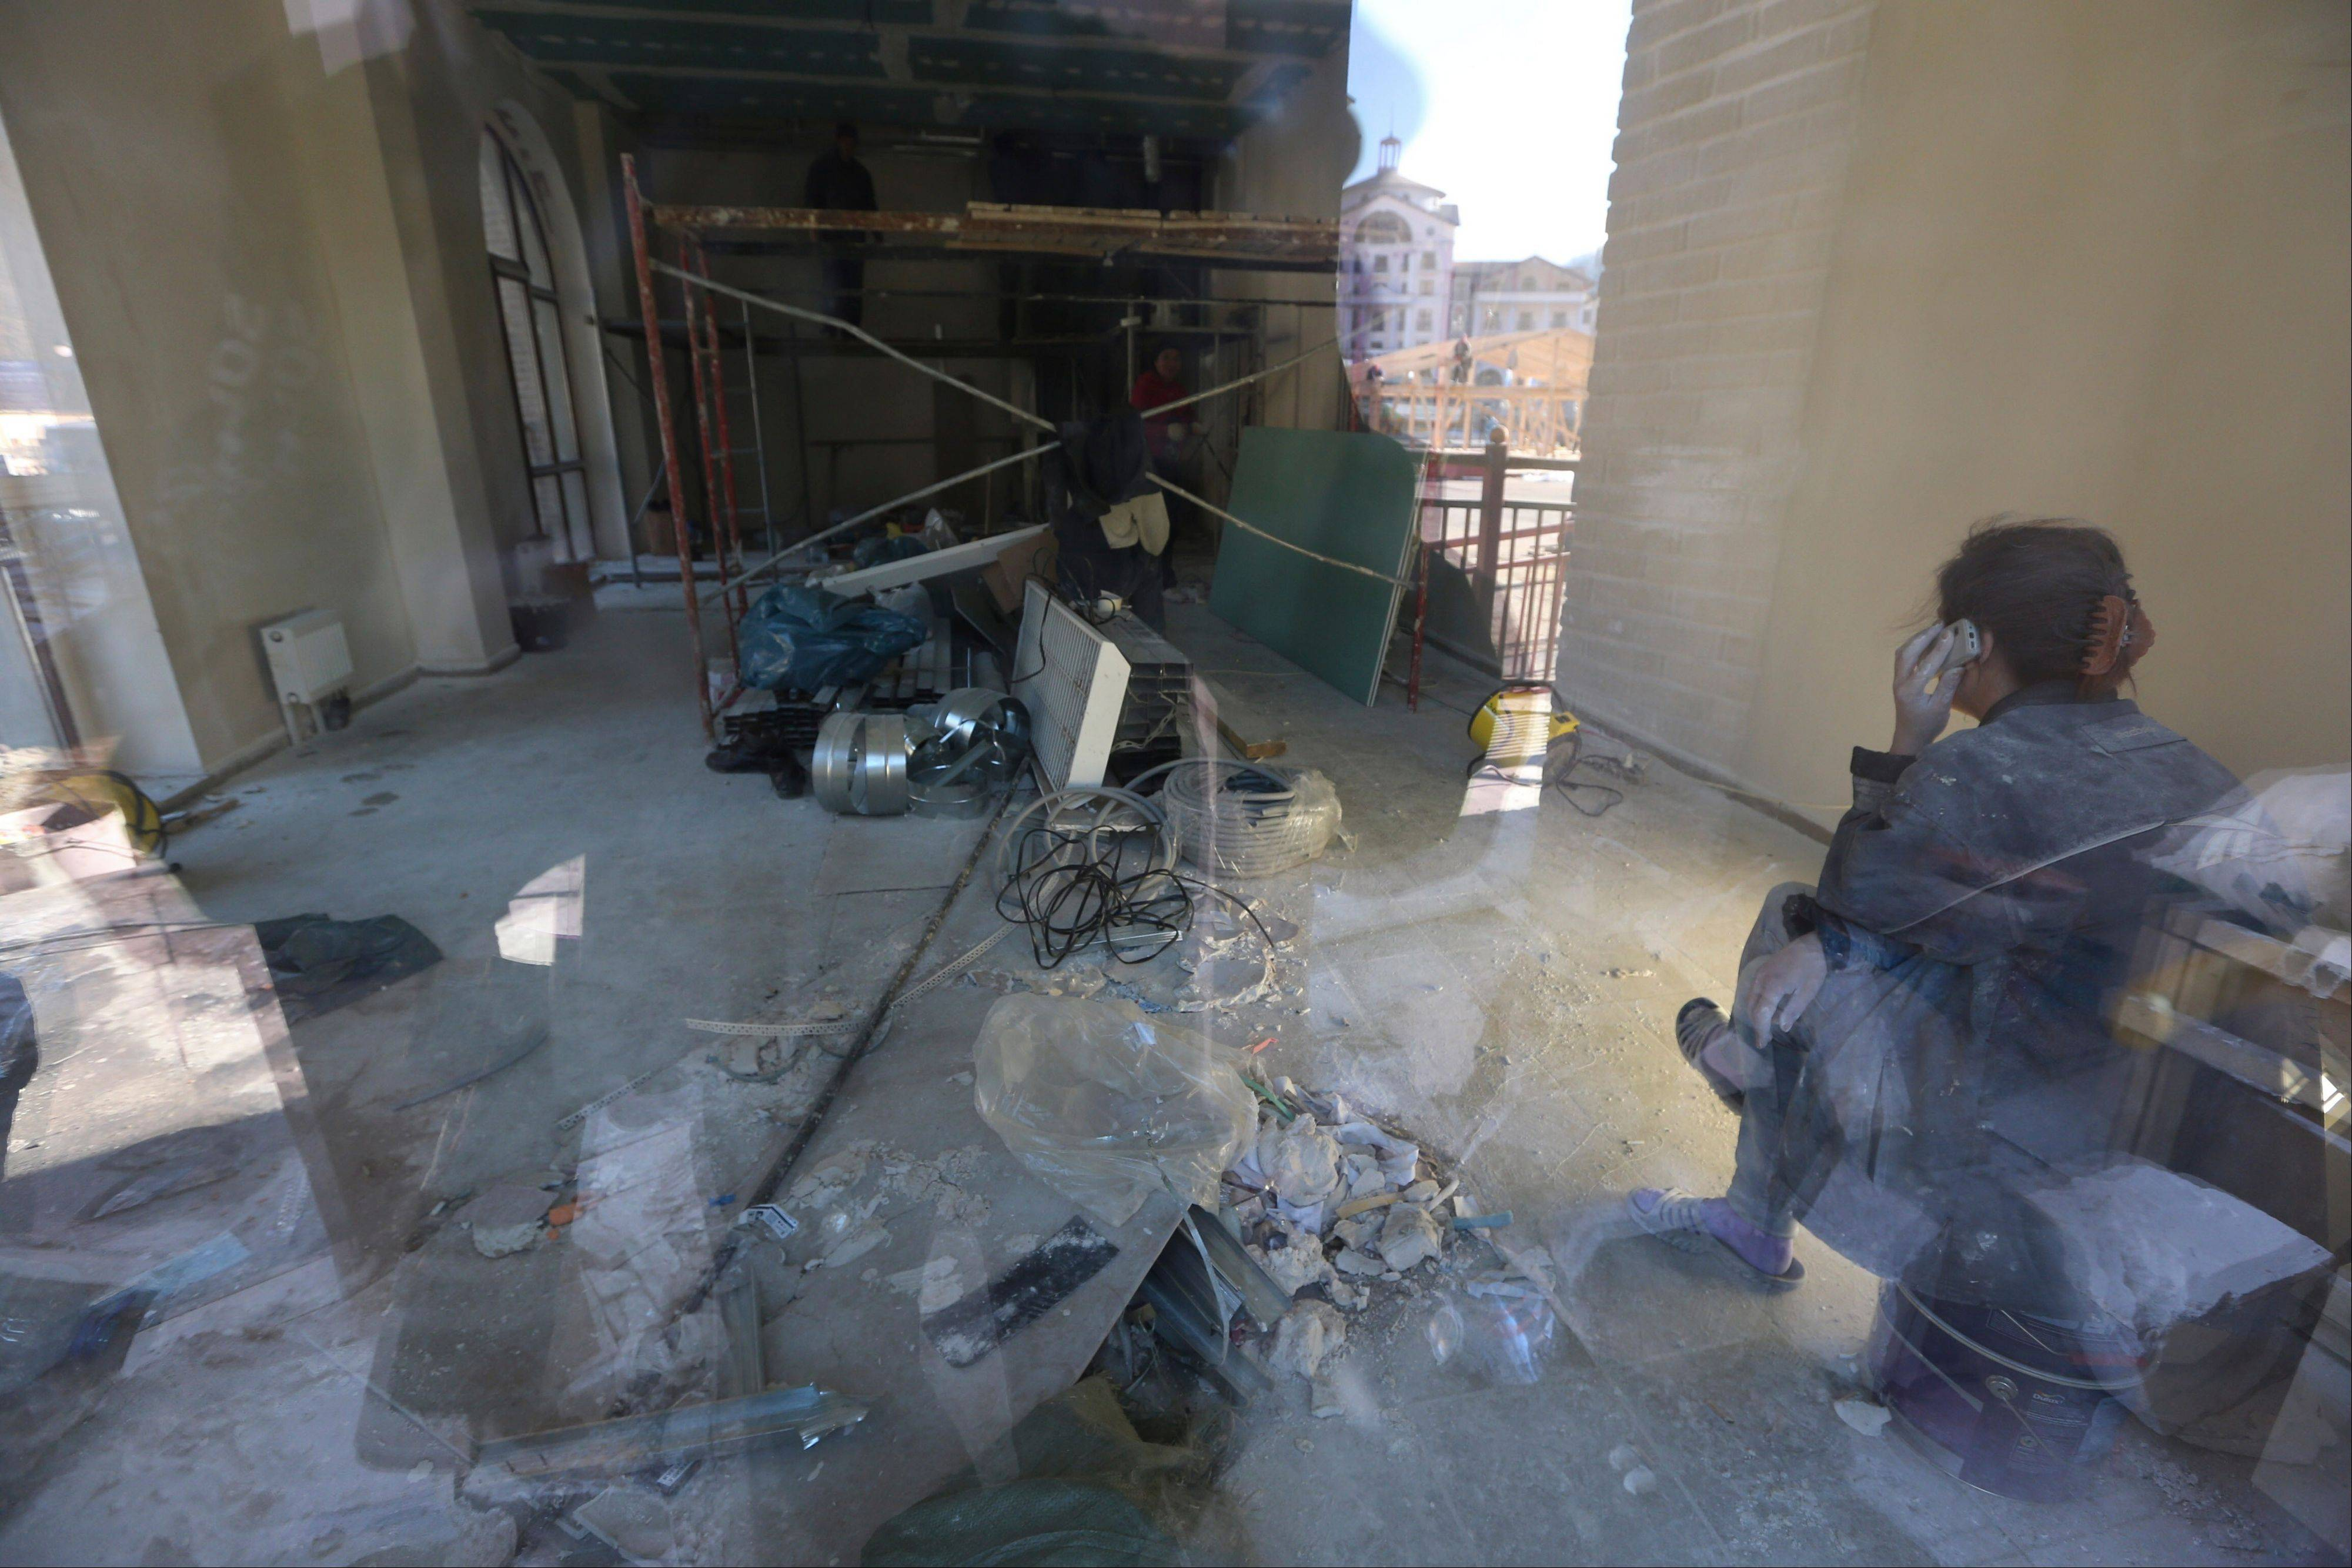 A view into an unfinished area of the Gorki Plaza East hotel in Krasnaya Polyana, Russia Sunday, Feb. 2, 2014. According to the 2014 Sochi Winter Olympic organizing committee, only six of the nine media hotels in the mountain area are fully operational.